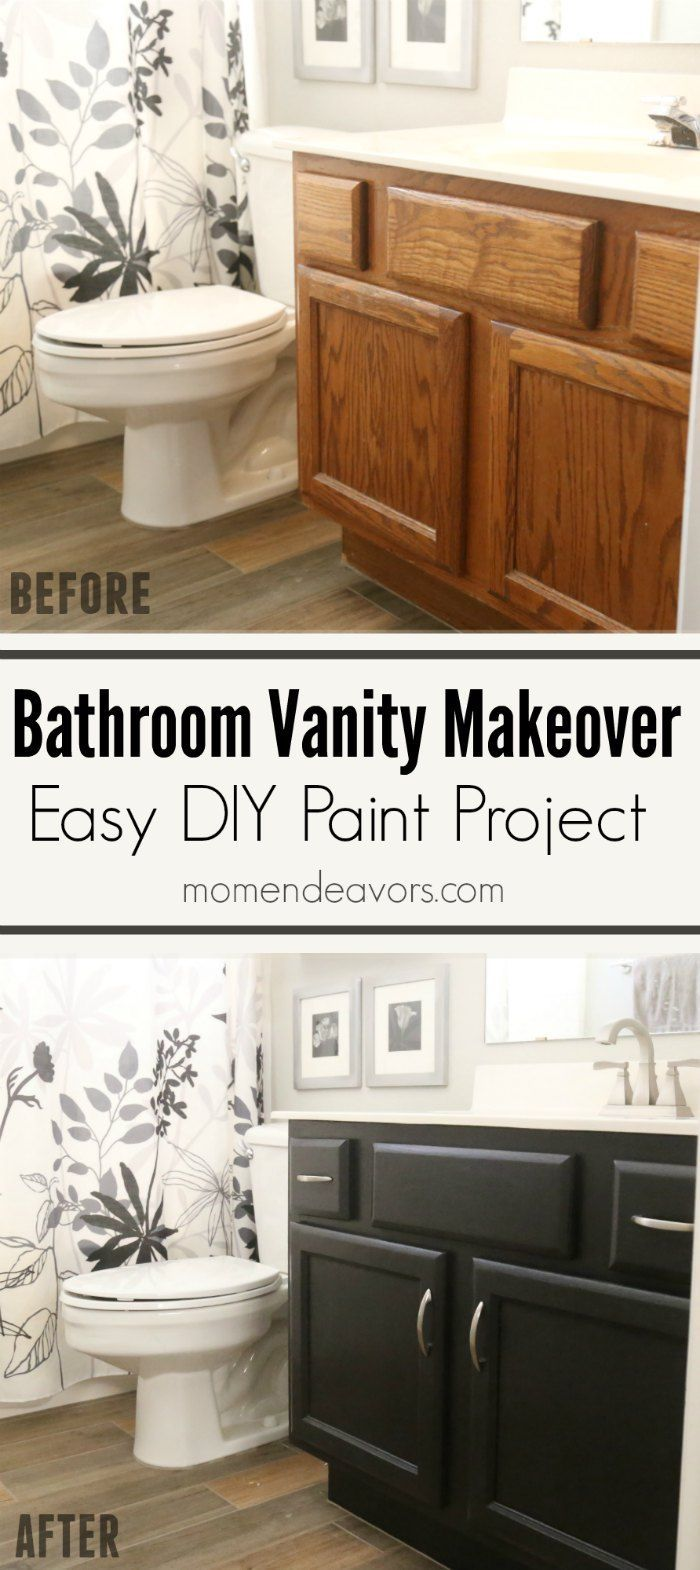 bathroom vanity makeover easy diy home paint project paint suggestions and easy diy tutorial - Bathroom Cabinets Diy